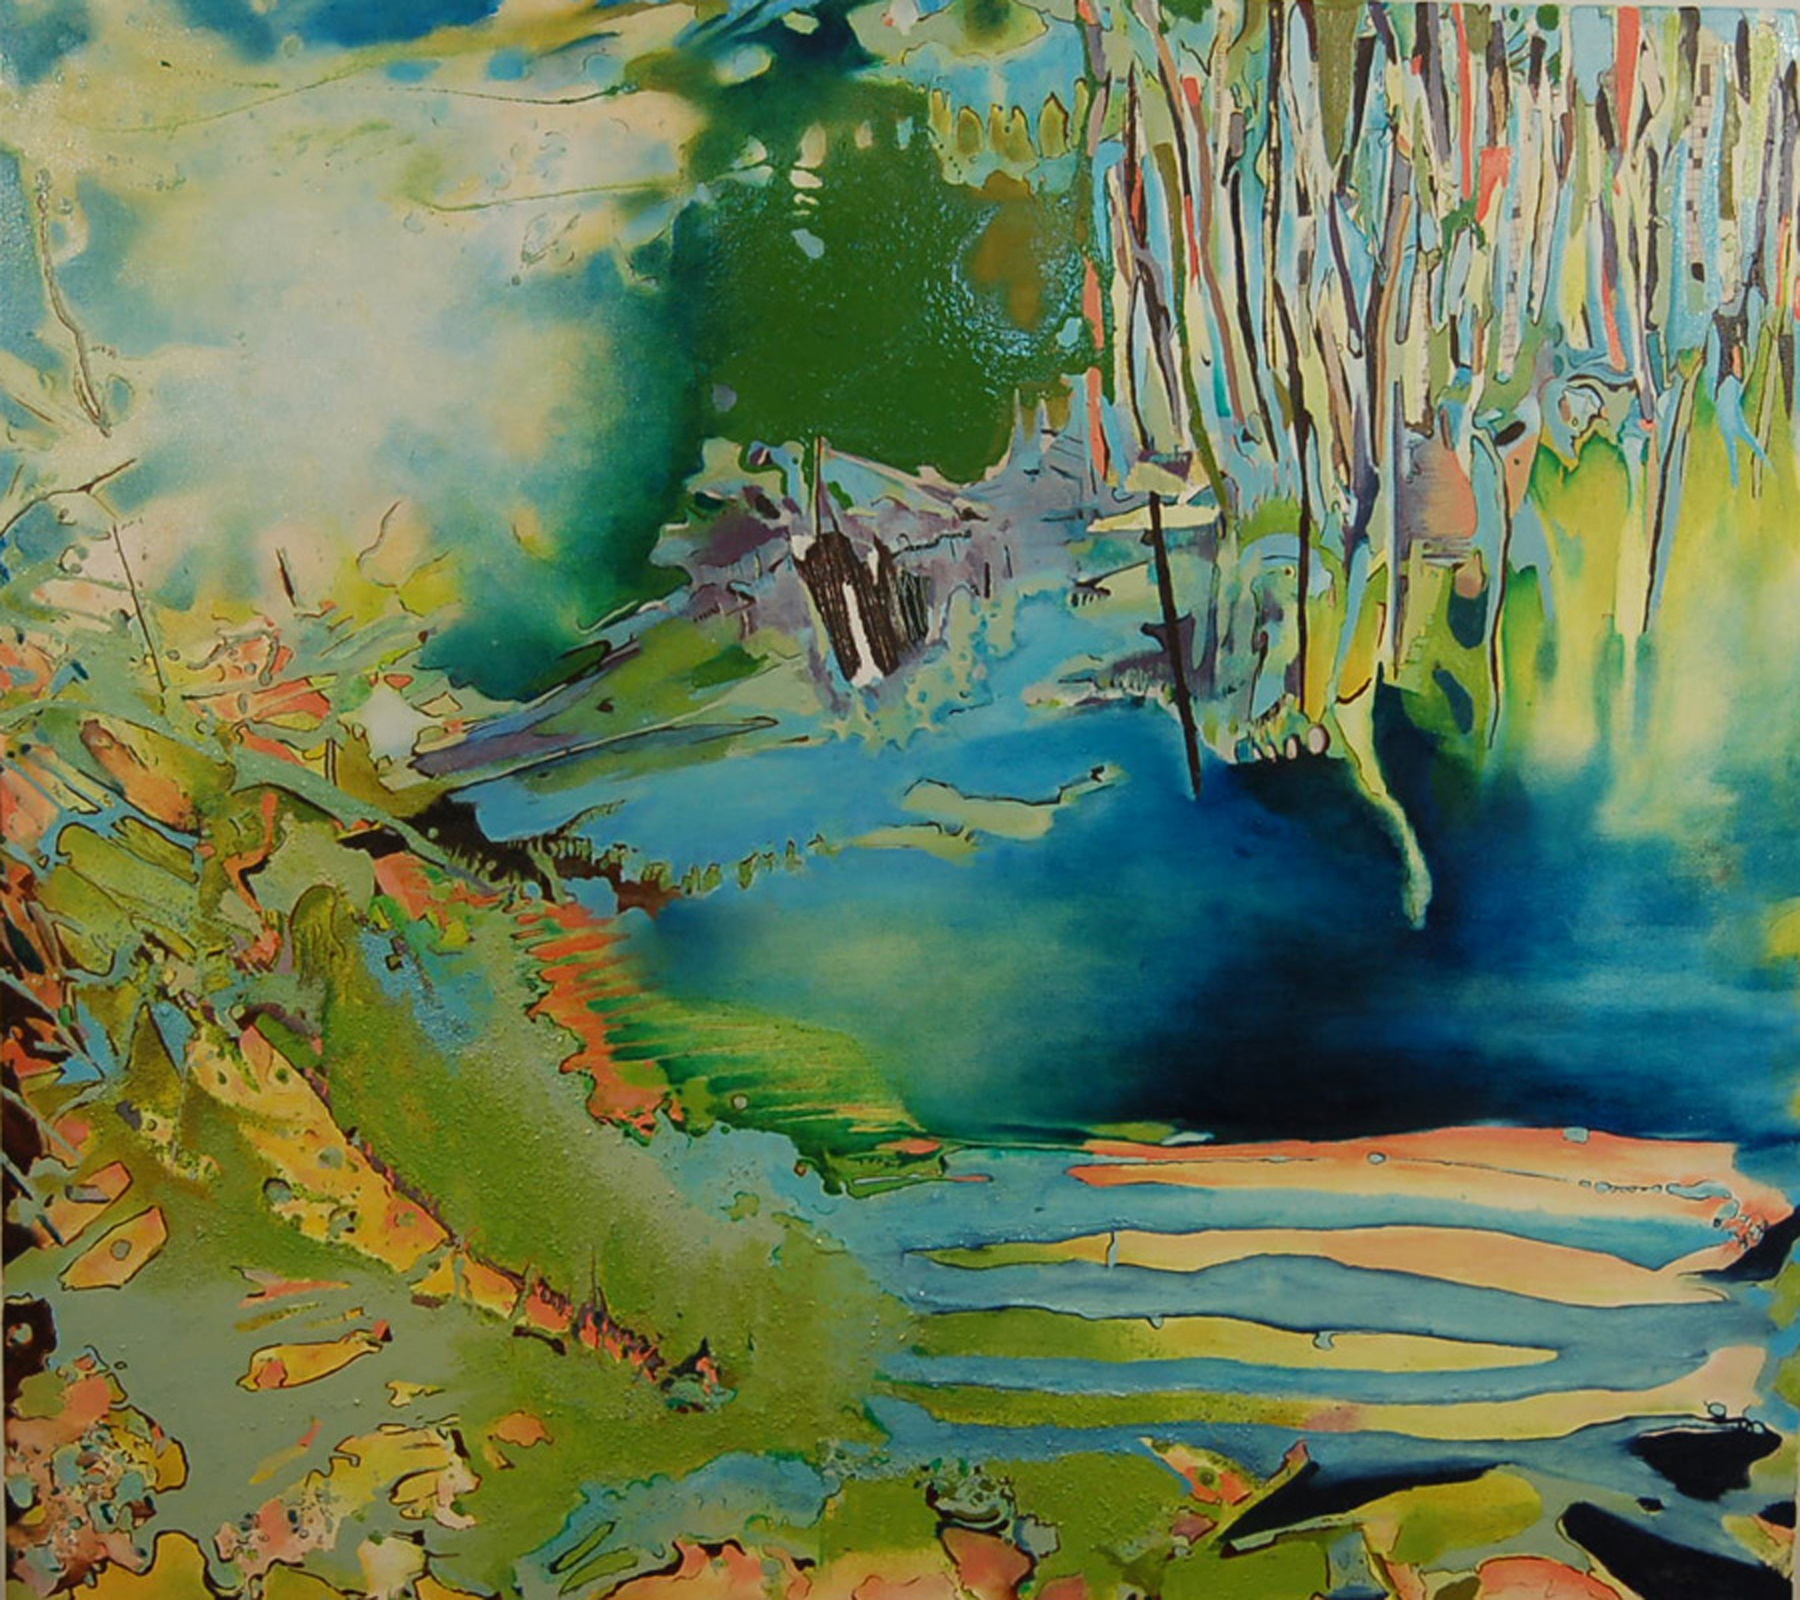 SOLD, Waterscape Wreckage 48 x 54 inches, Mixed Media